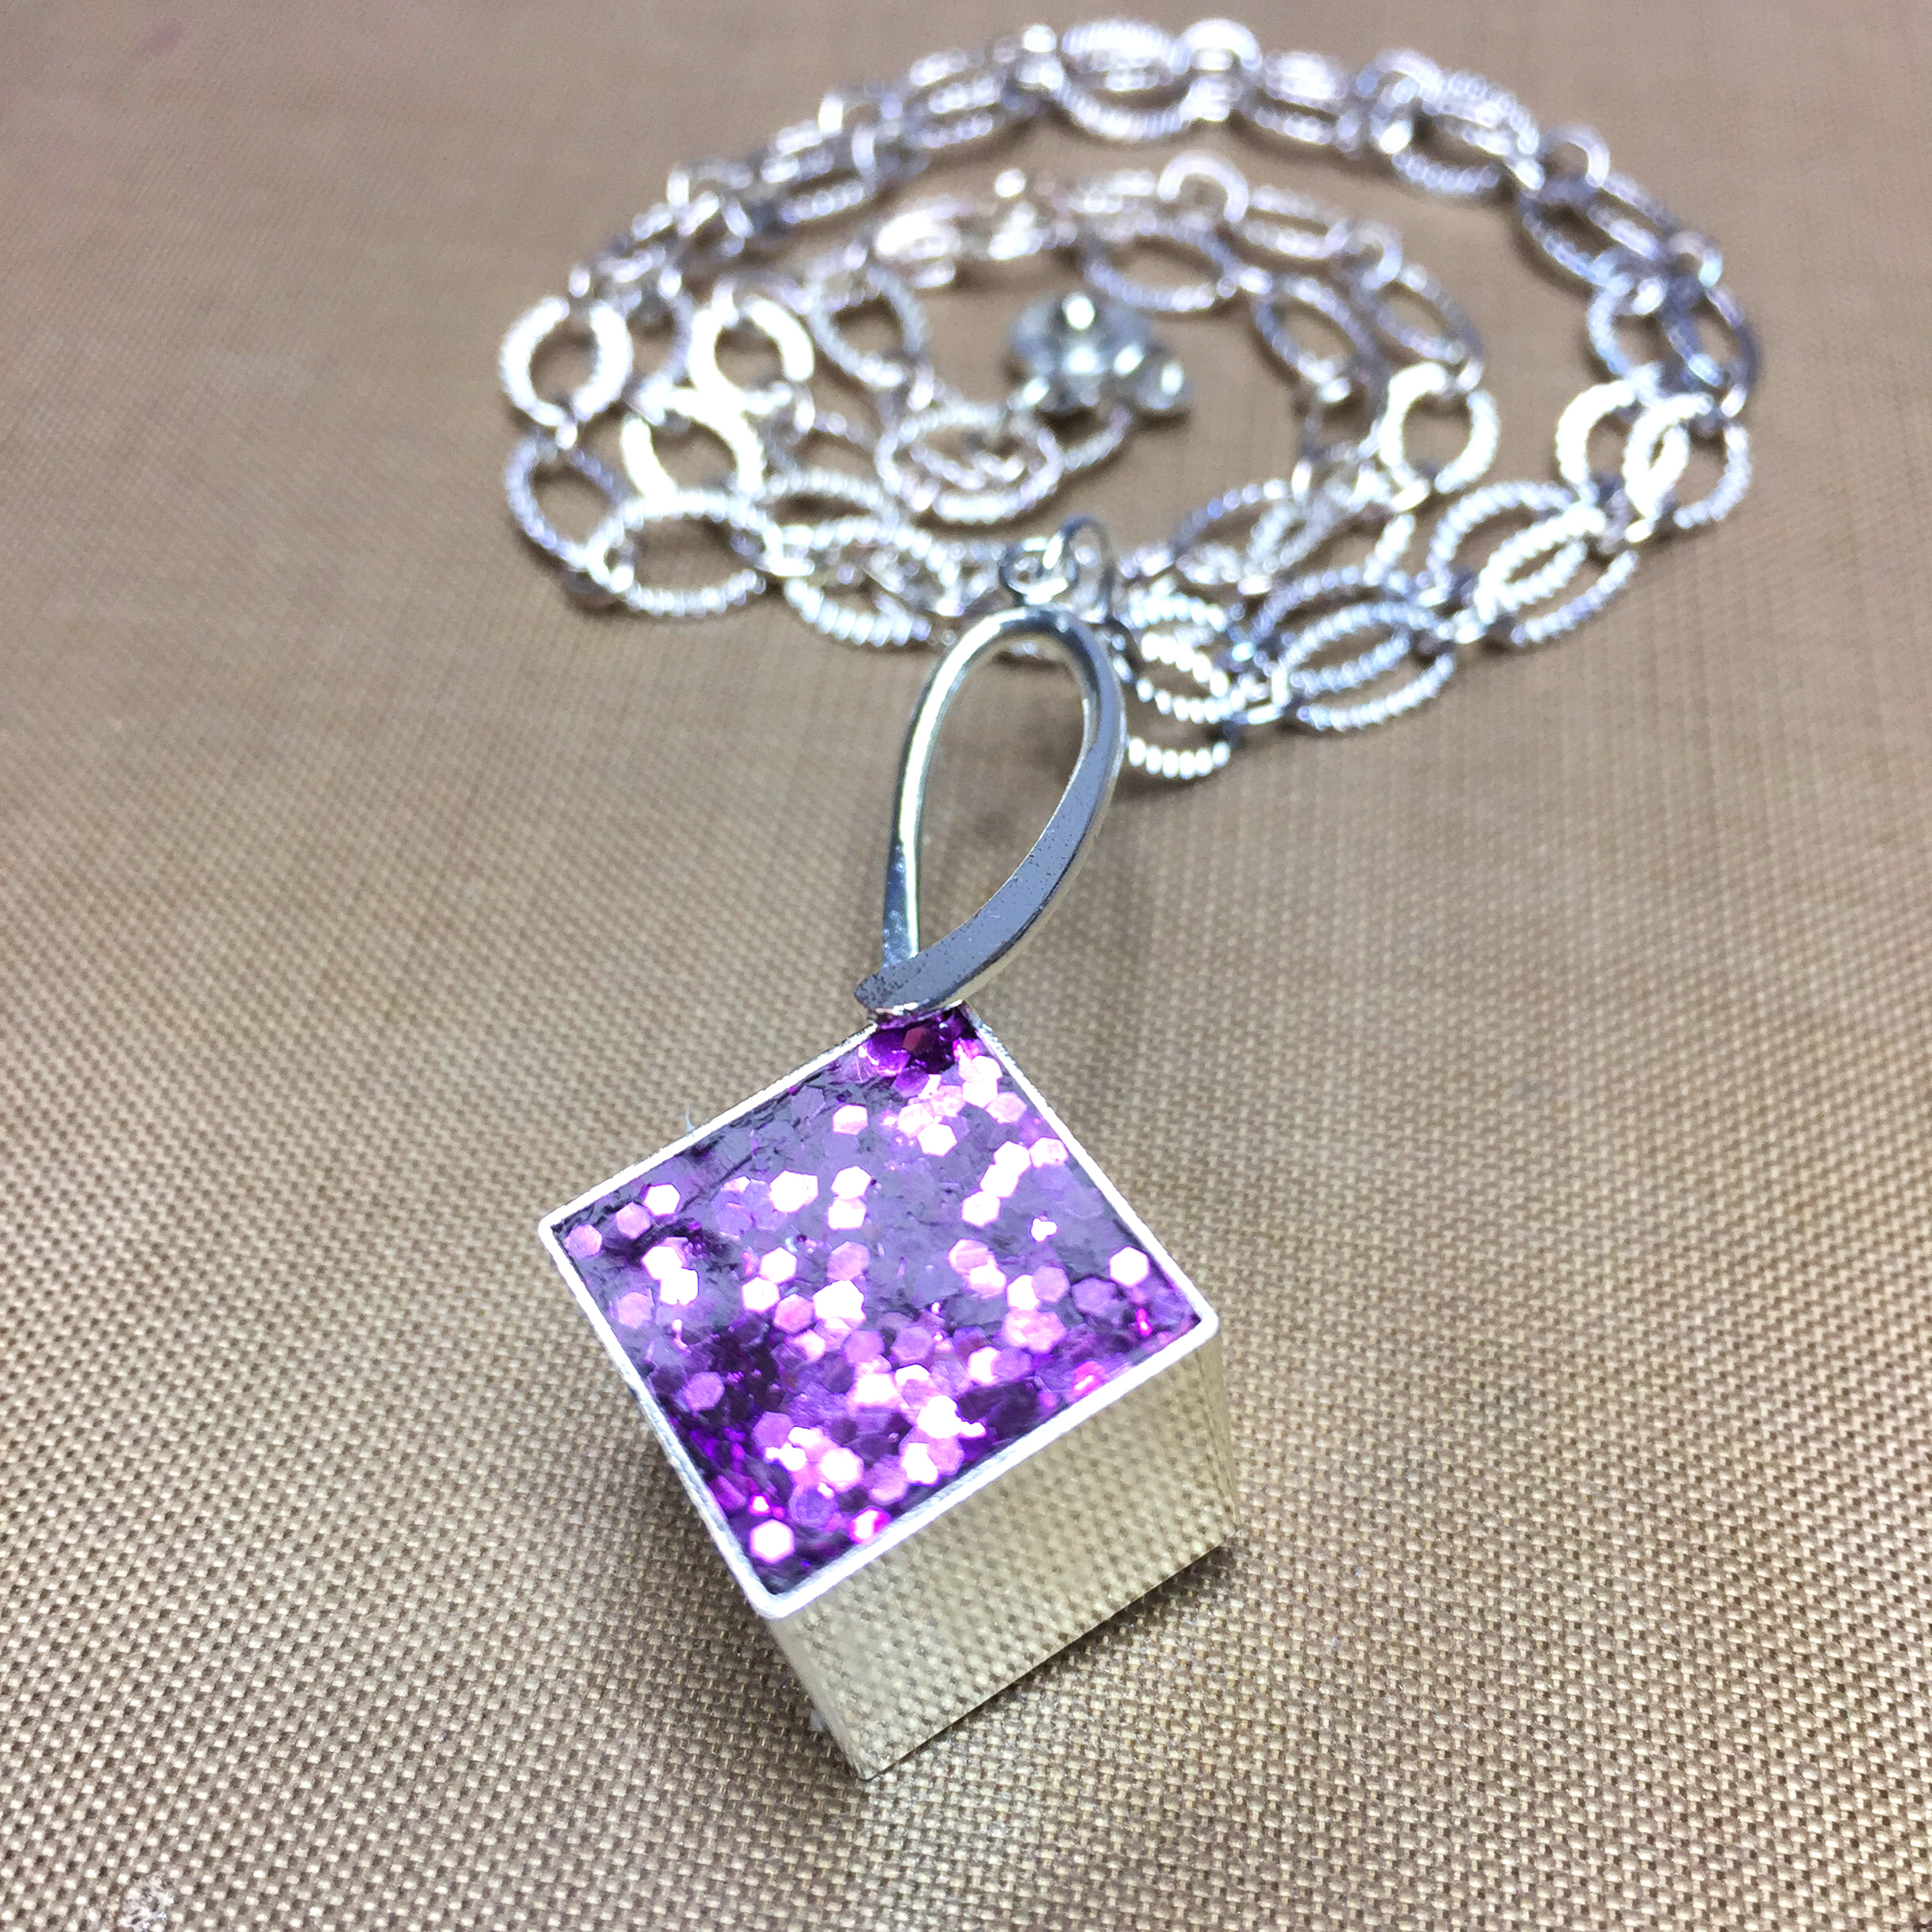 Glittered resin cube pendant